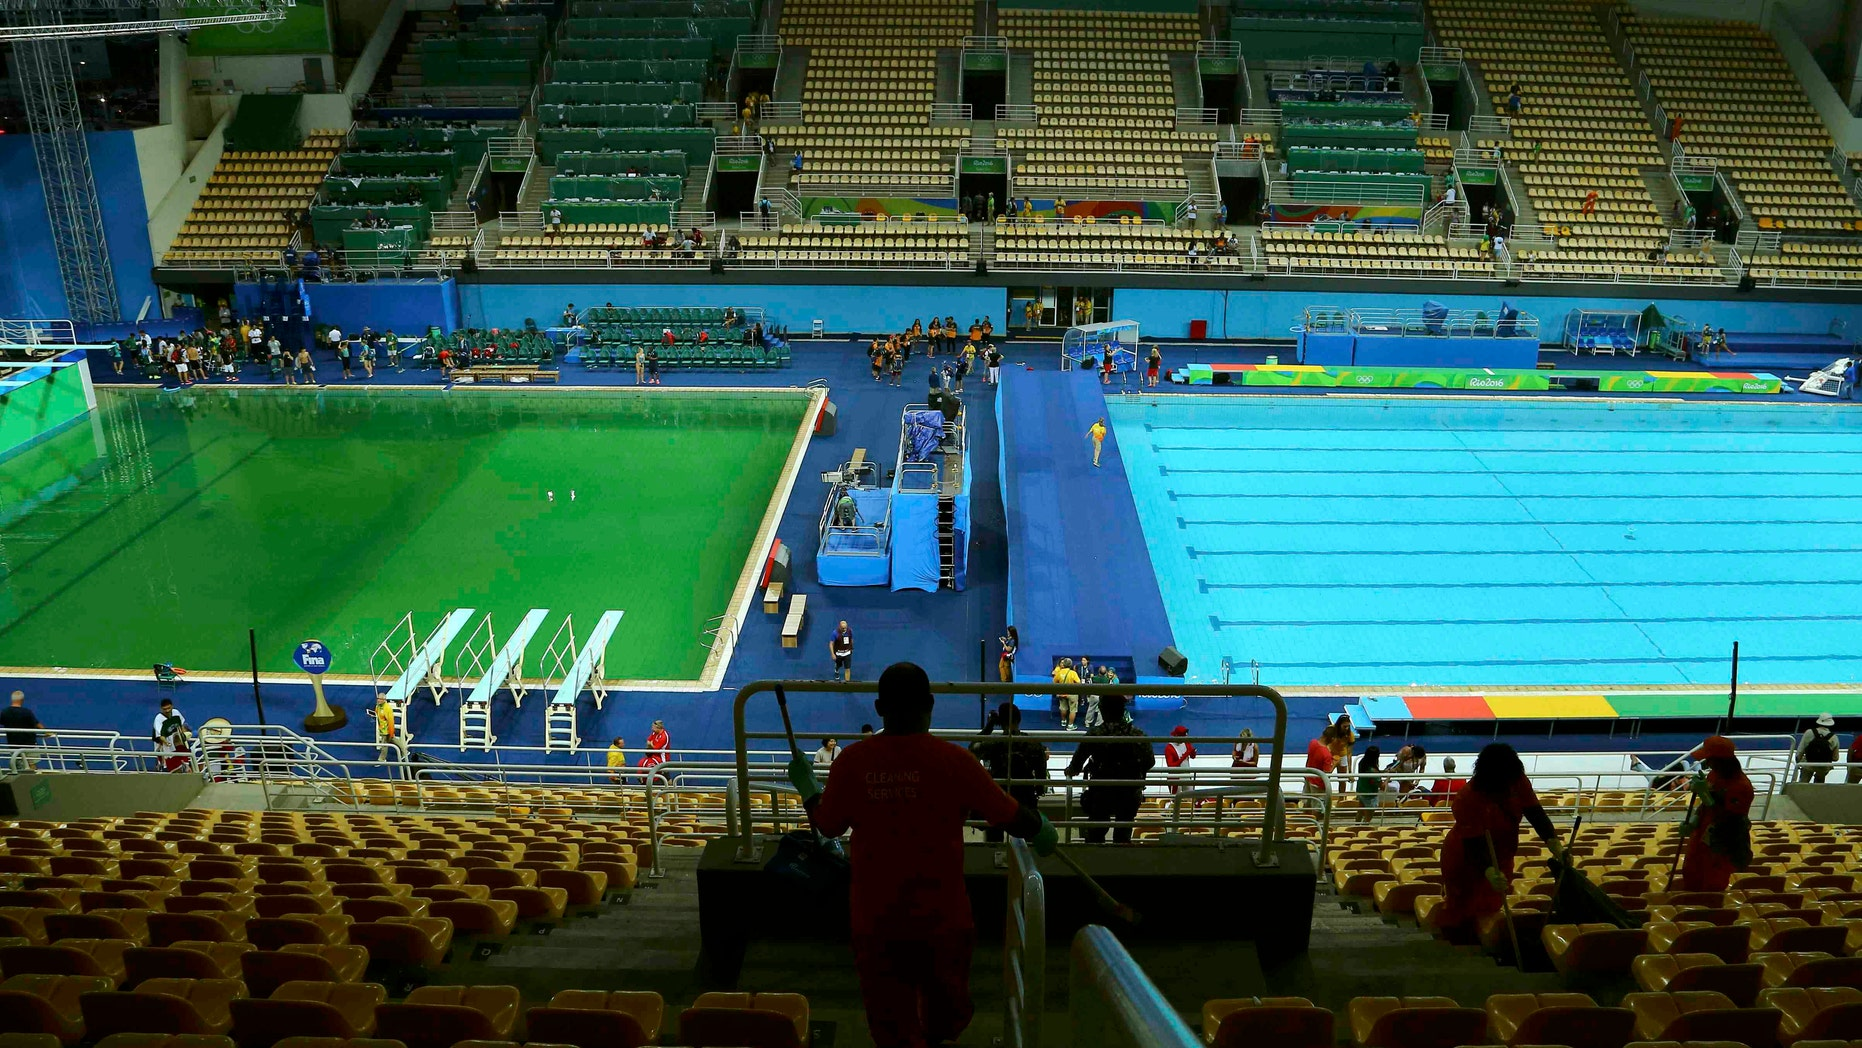 Green Olympics: Algae turns Rio pool a strange color | Fox News